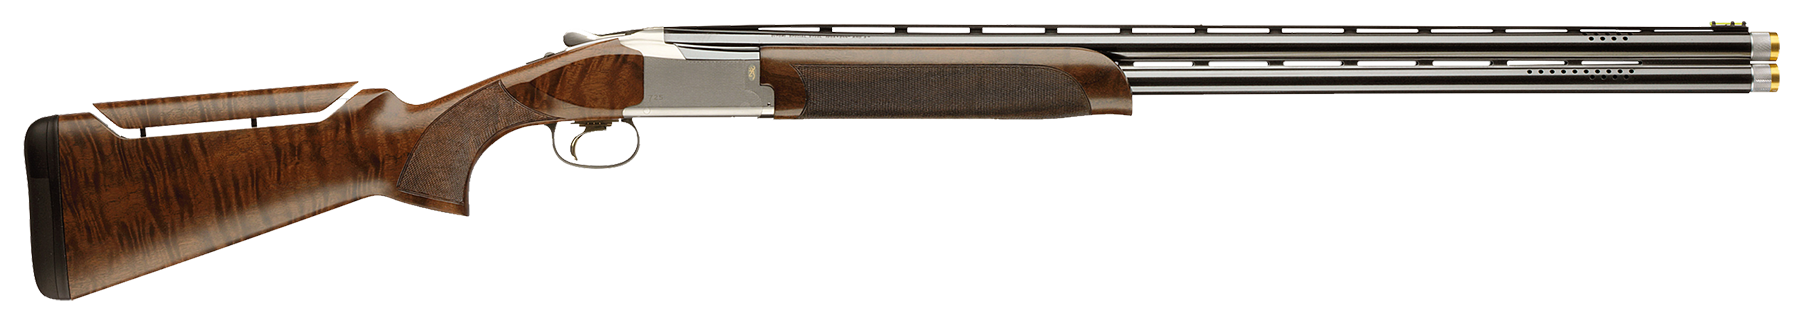 Browning Citori 725 Sporting Adjustable Over/Under Shotgun 3'' 12 Gauge 30'' Silver Nitride Steel - Grade III Gloss/Grade IV Walnut